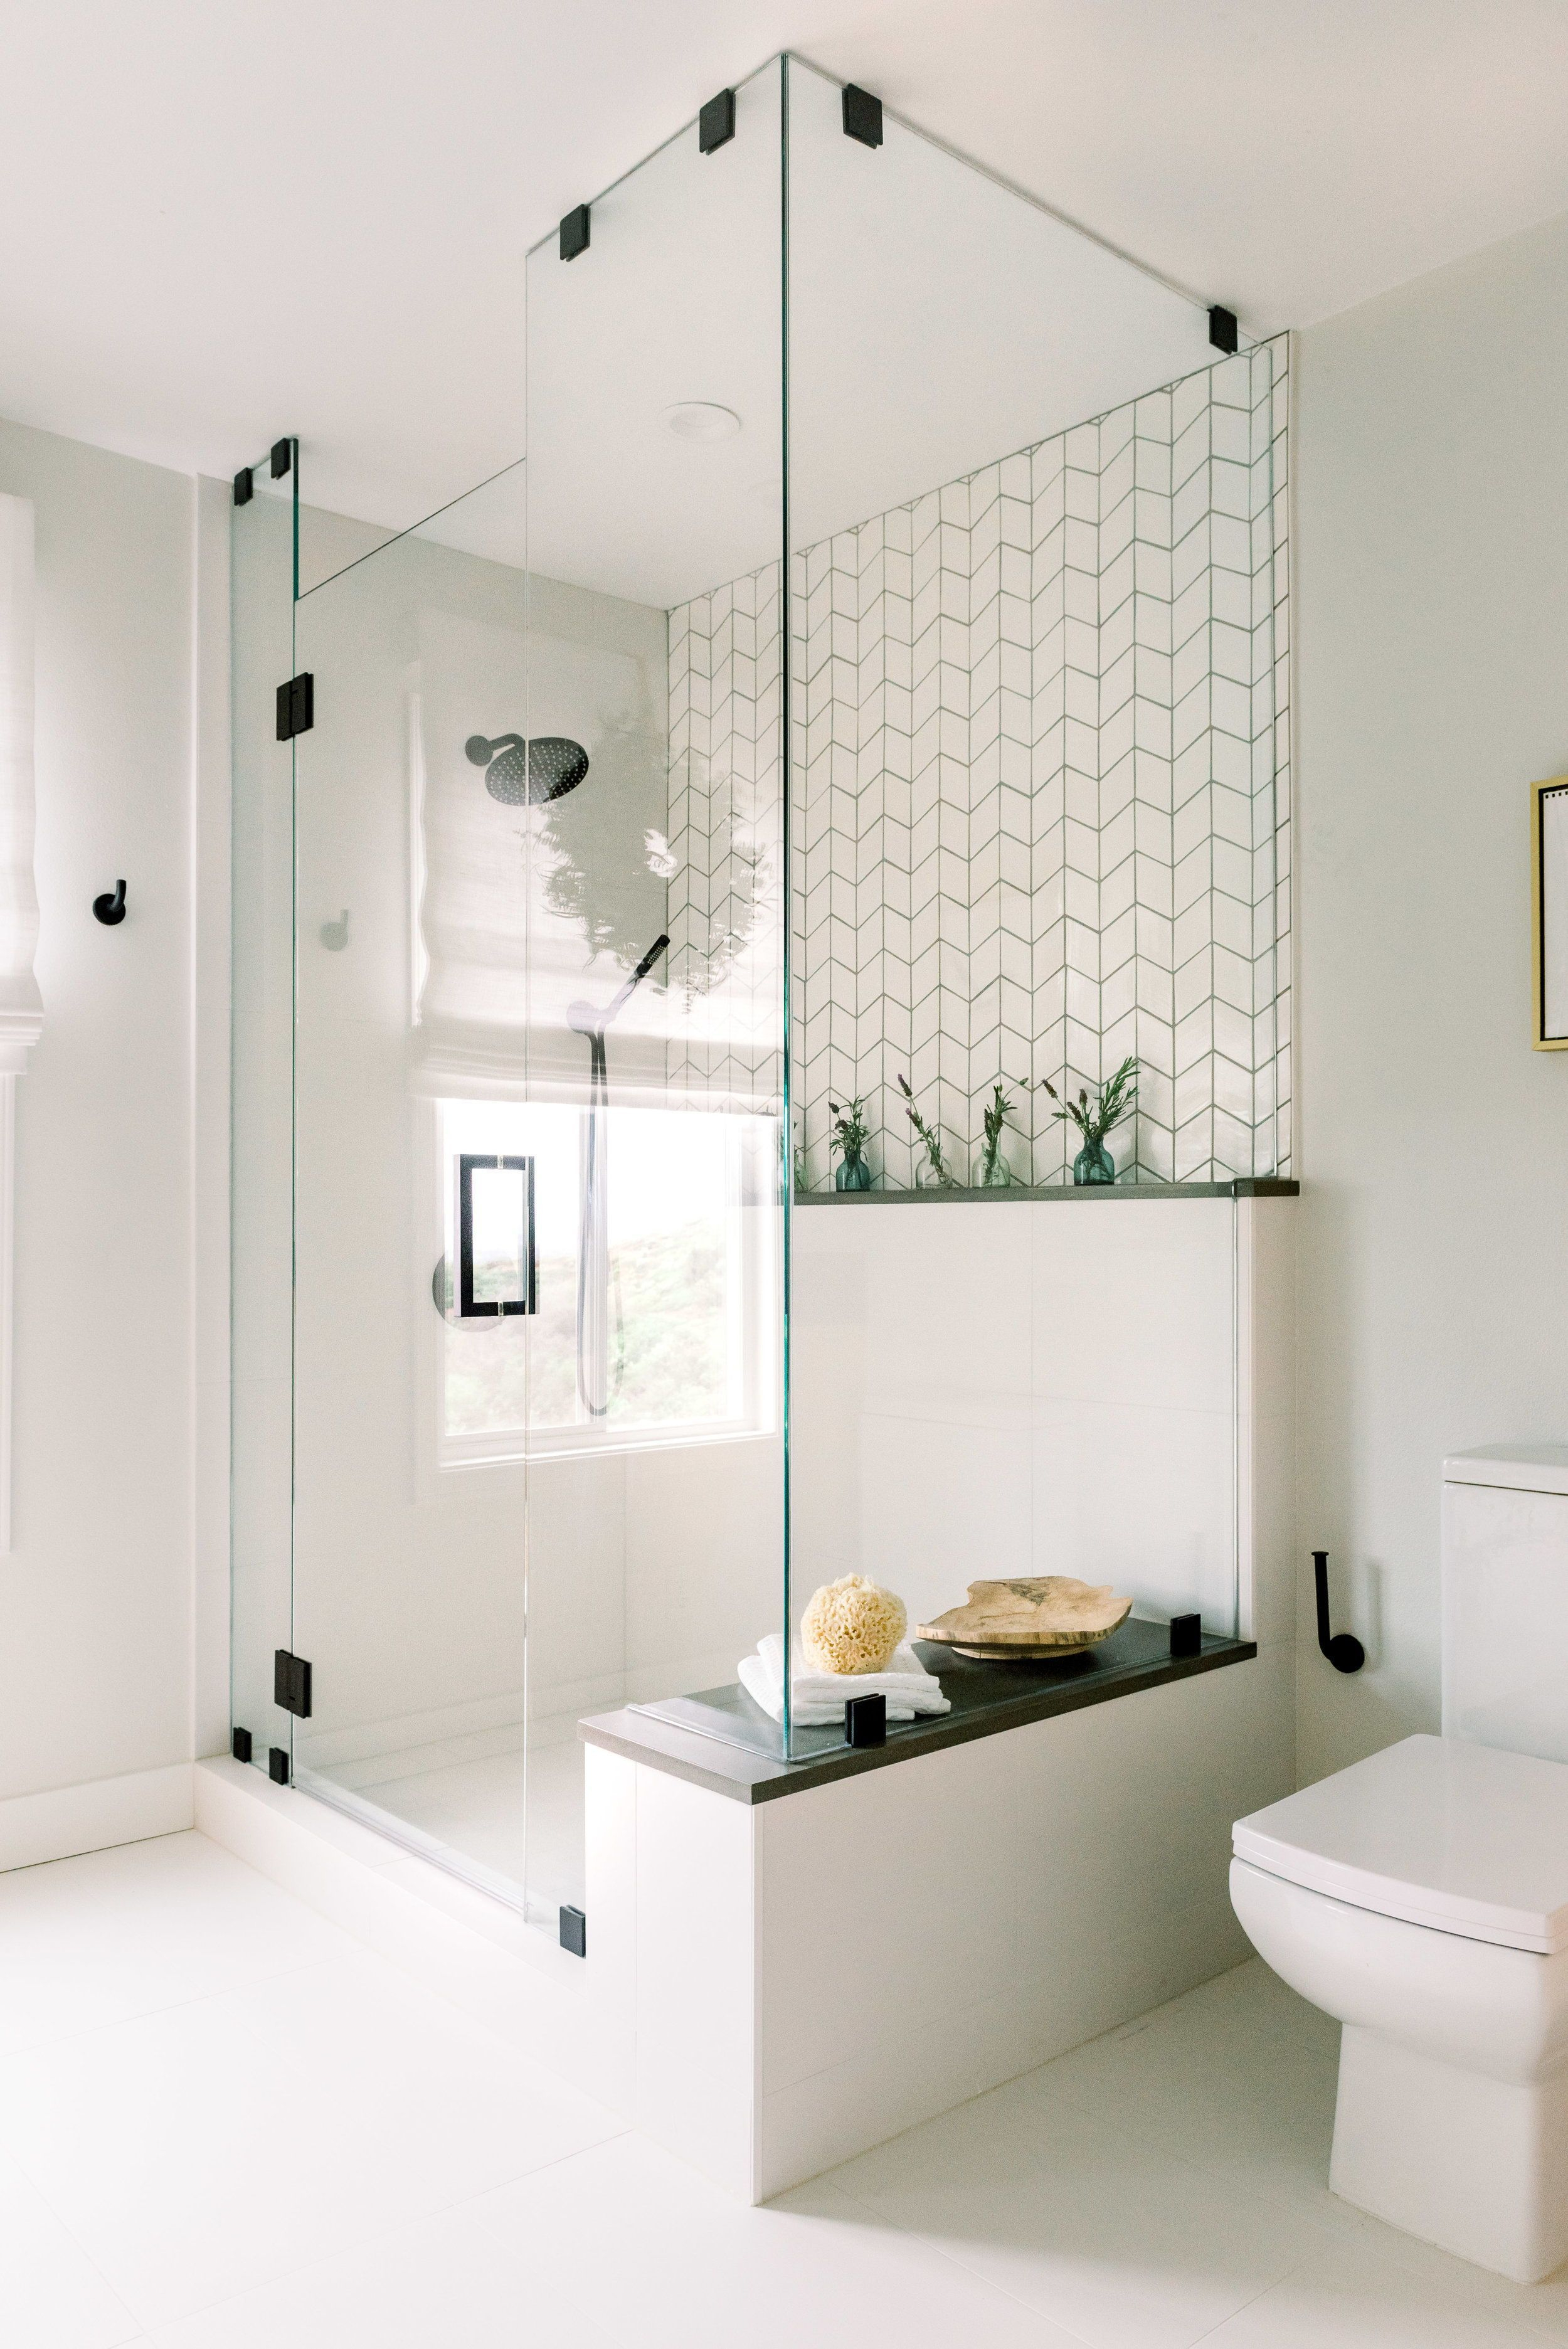 Fascinating Farmhouse Master Bathroom Remodel Ideas To Have Now44